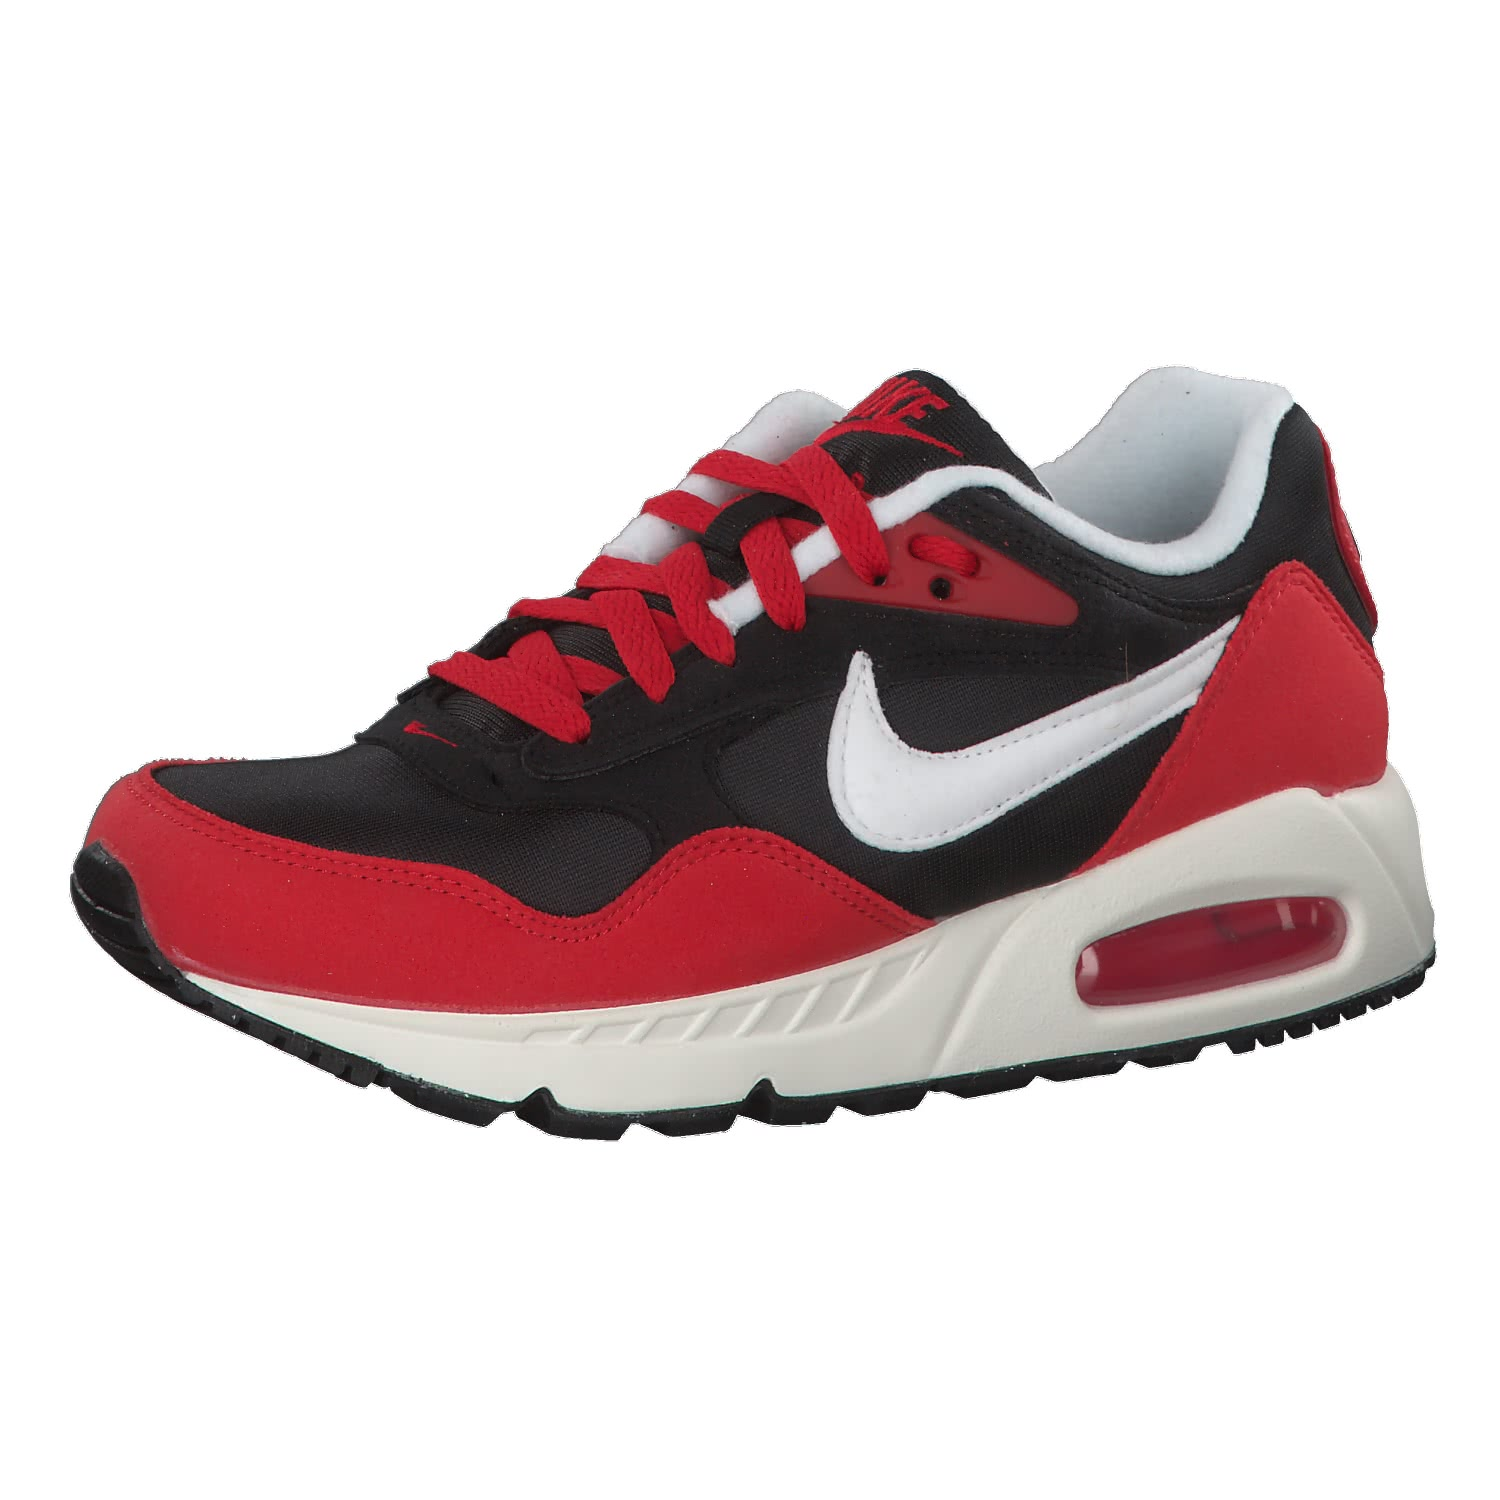 Nike Damen Sneaker Air Max Correlate 511417 |